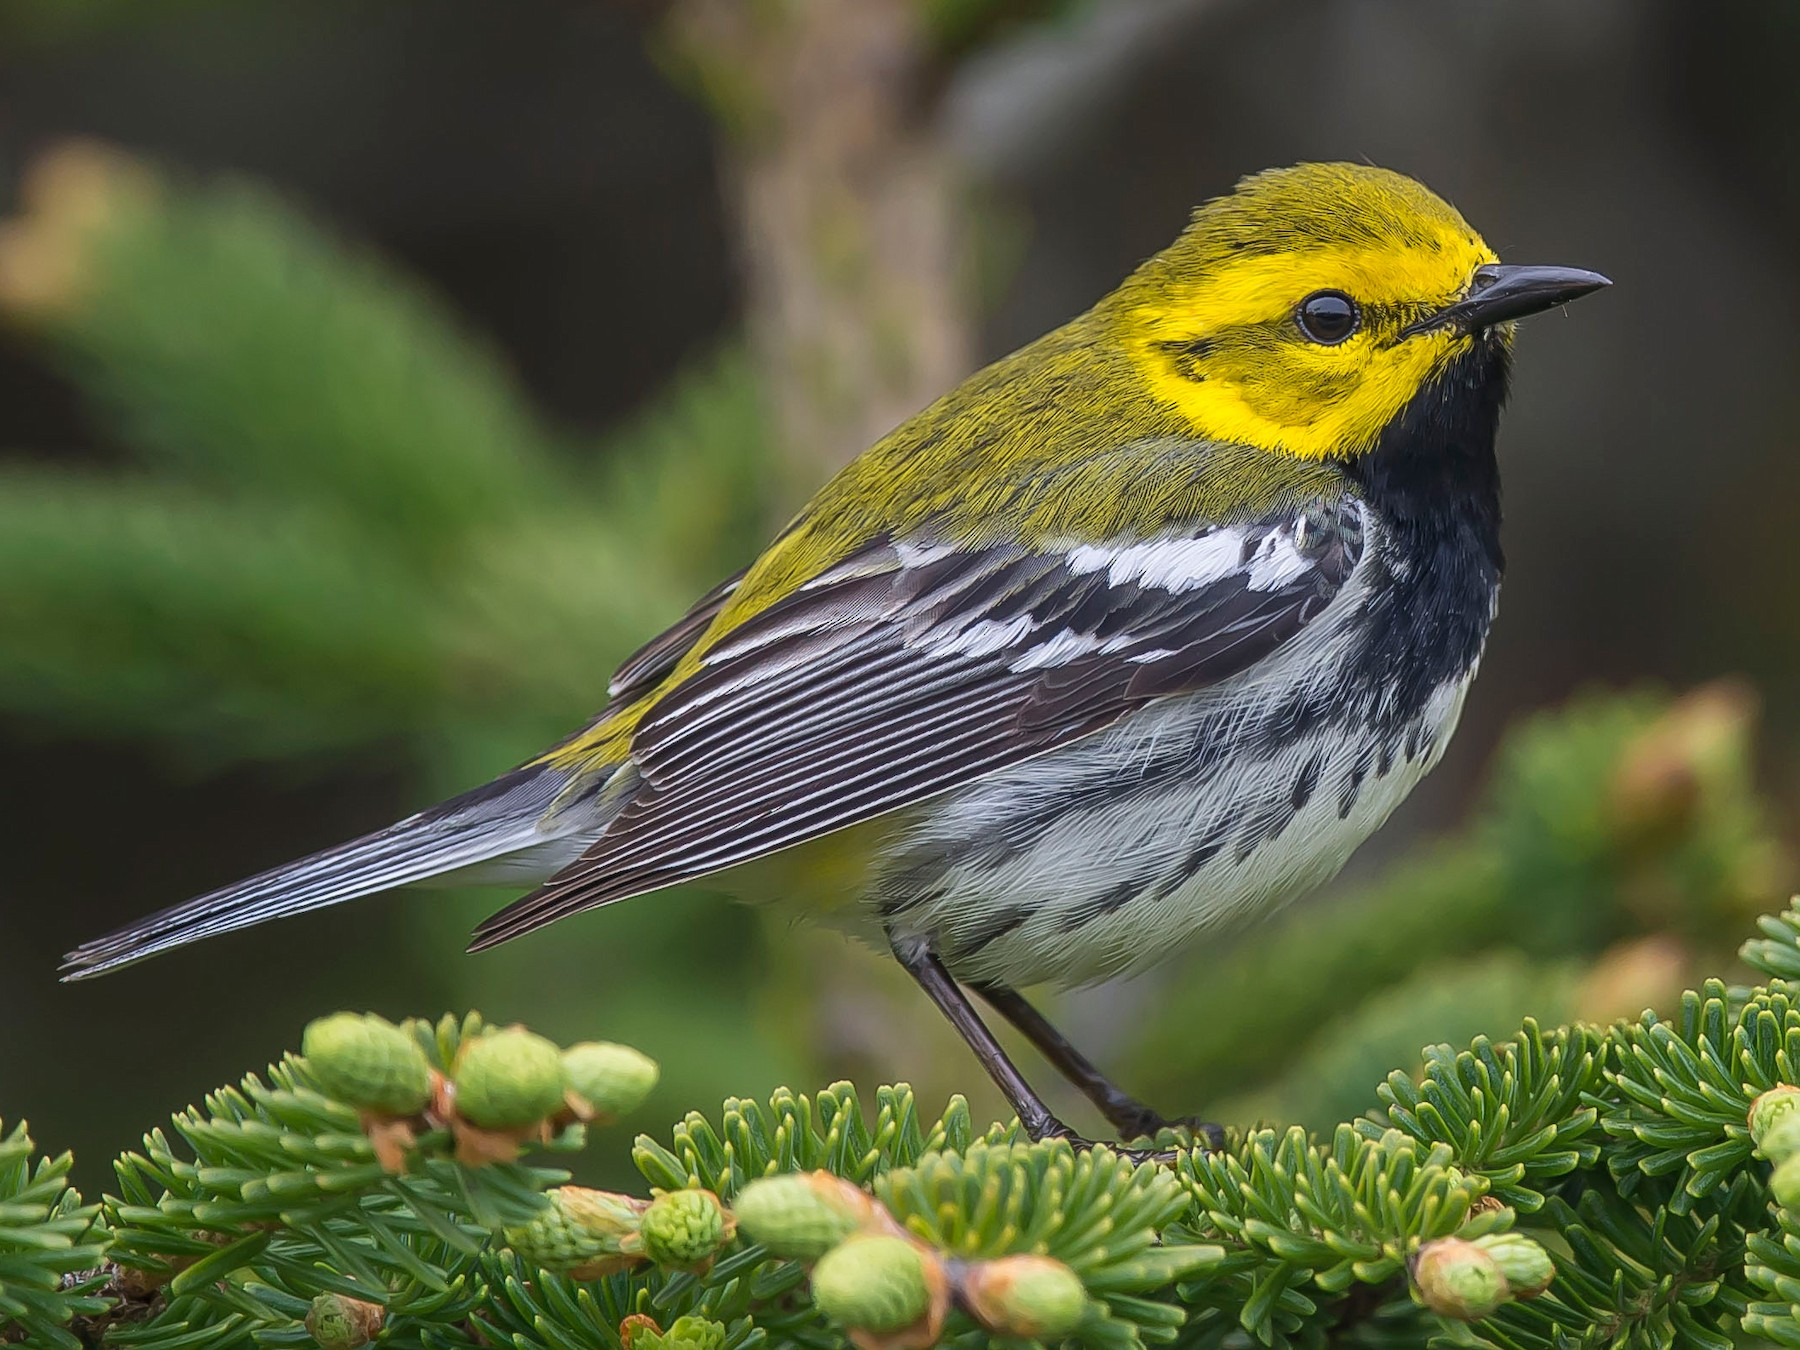 Black-throated Green Warbler - Ronnie d'Entremont